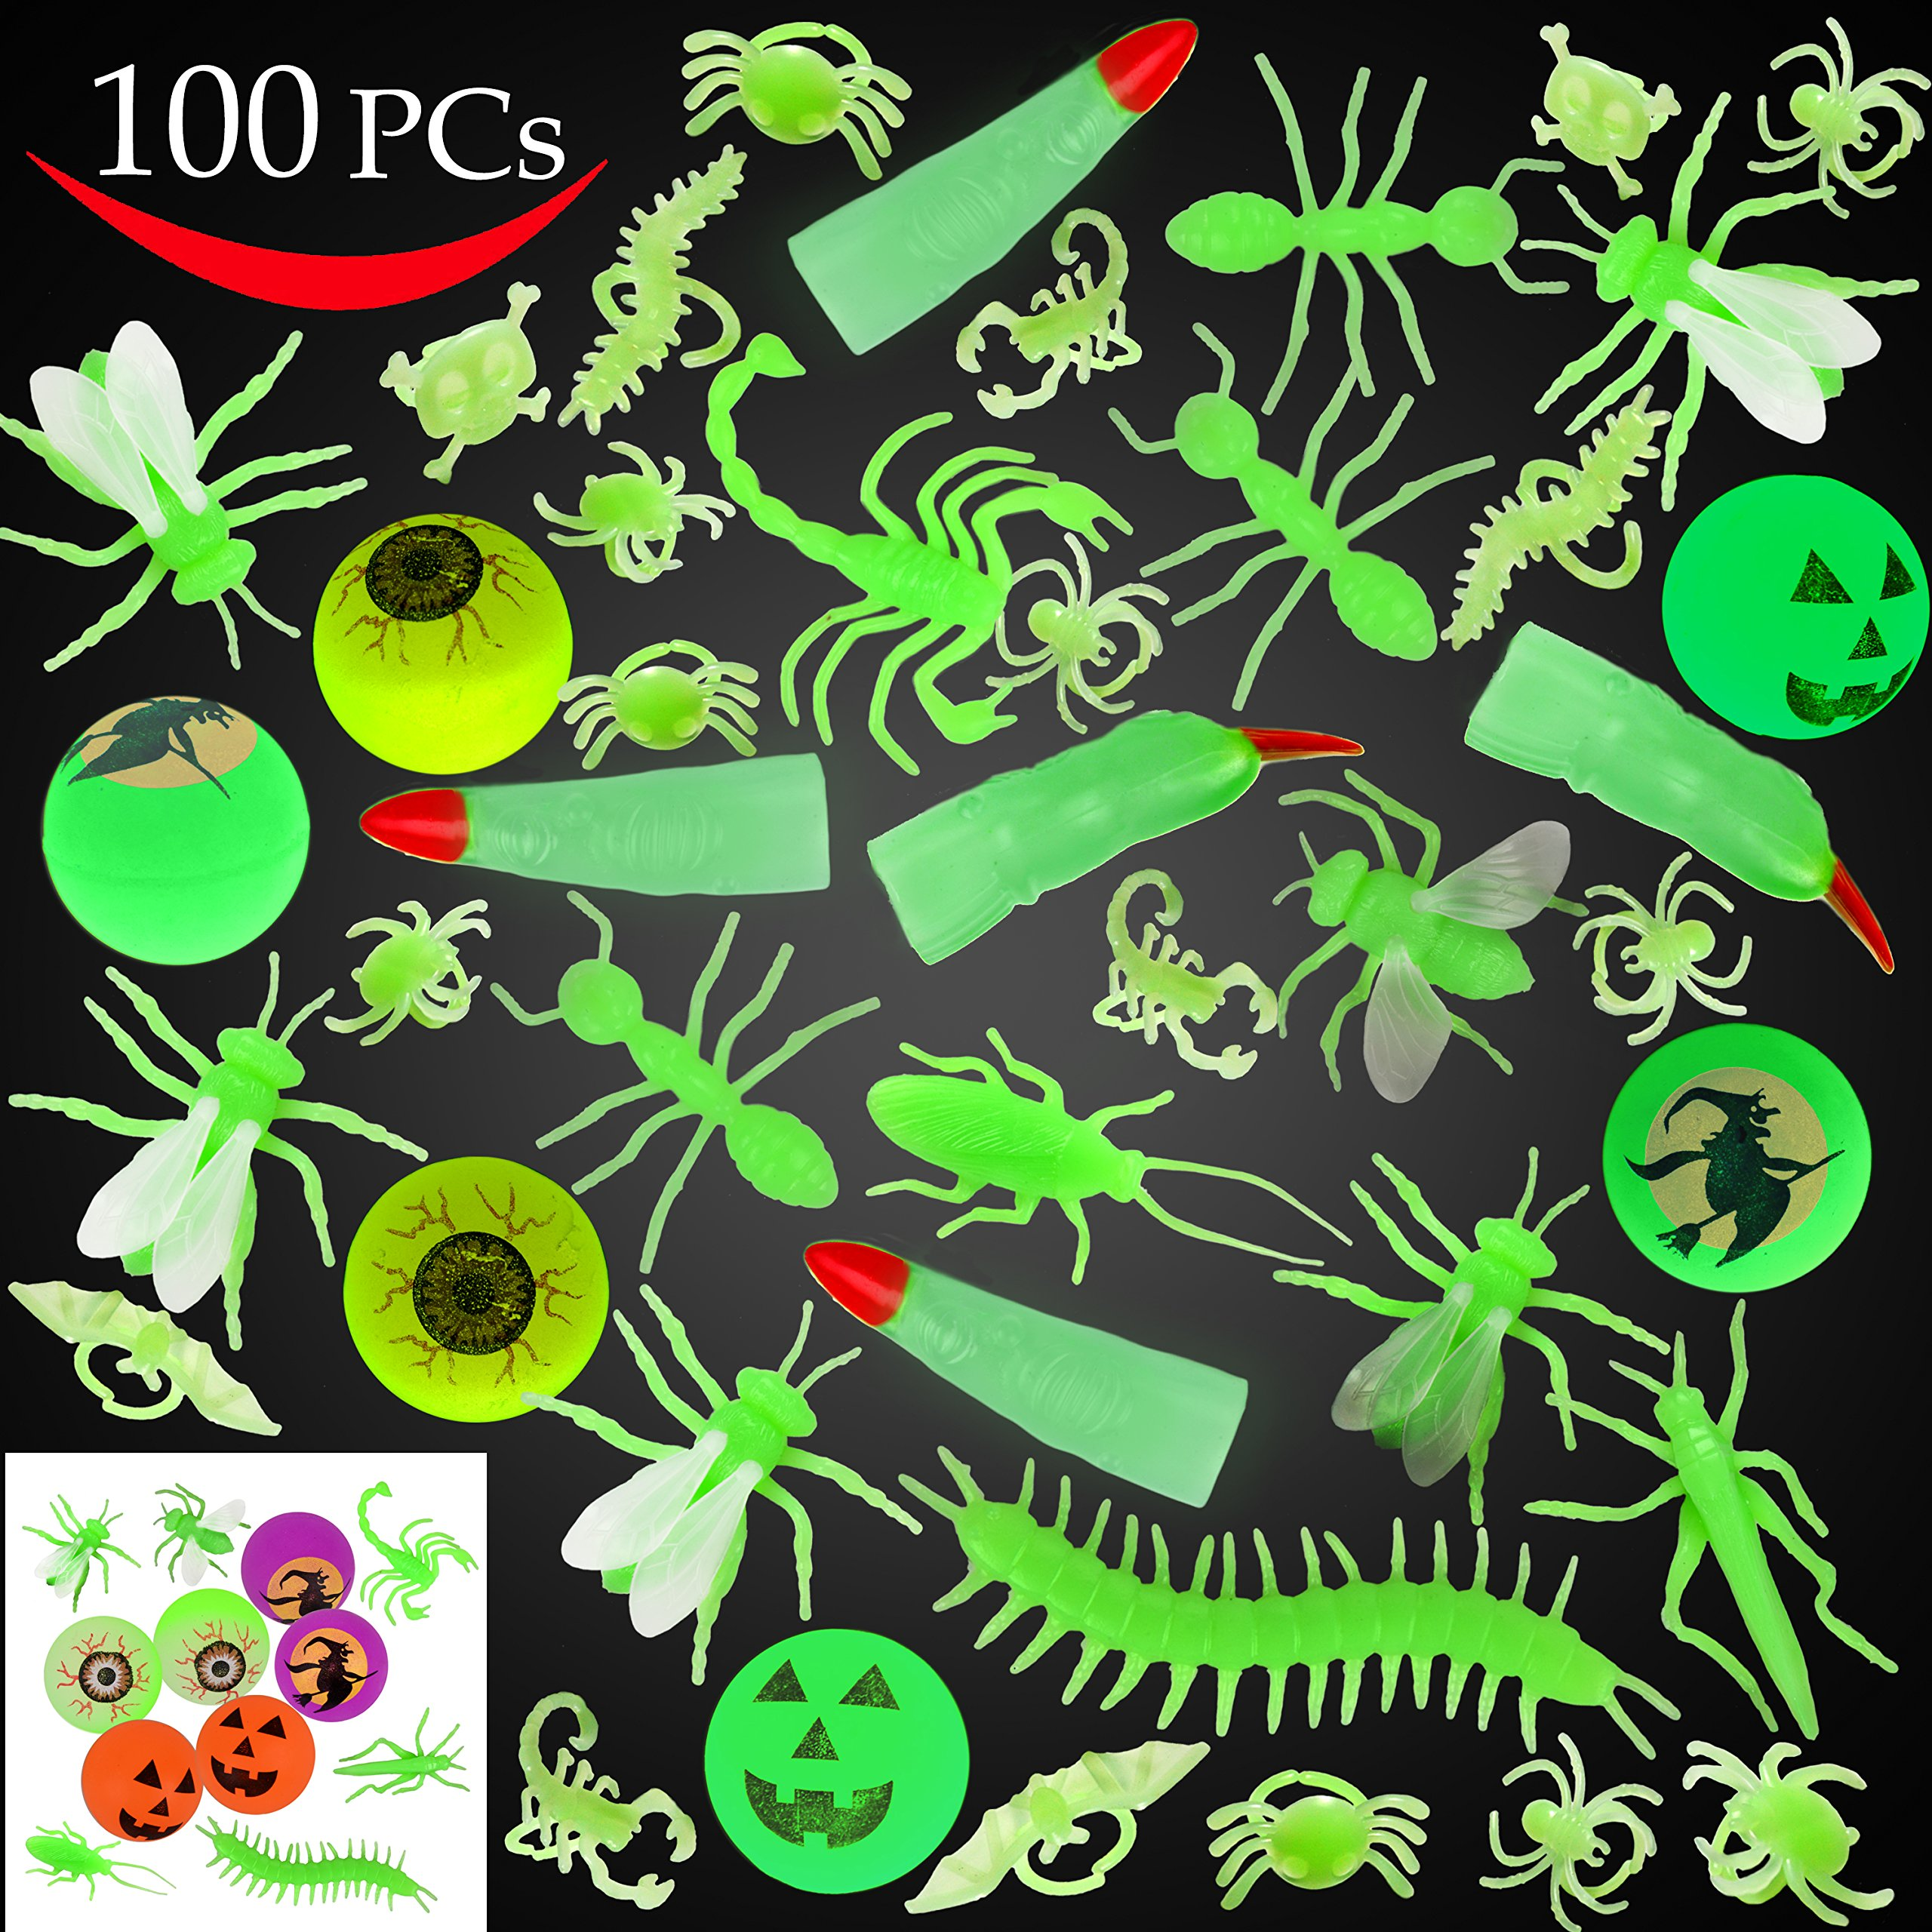 JOYIN 100 Pieces Halloween Glow in The Dark Bugs and Toys Glow Bugs, Plastic Bugs, Glow Bug Rings , Glow Bouncy Balls and Witch Fingers for Halloween Party Favors and Decorations